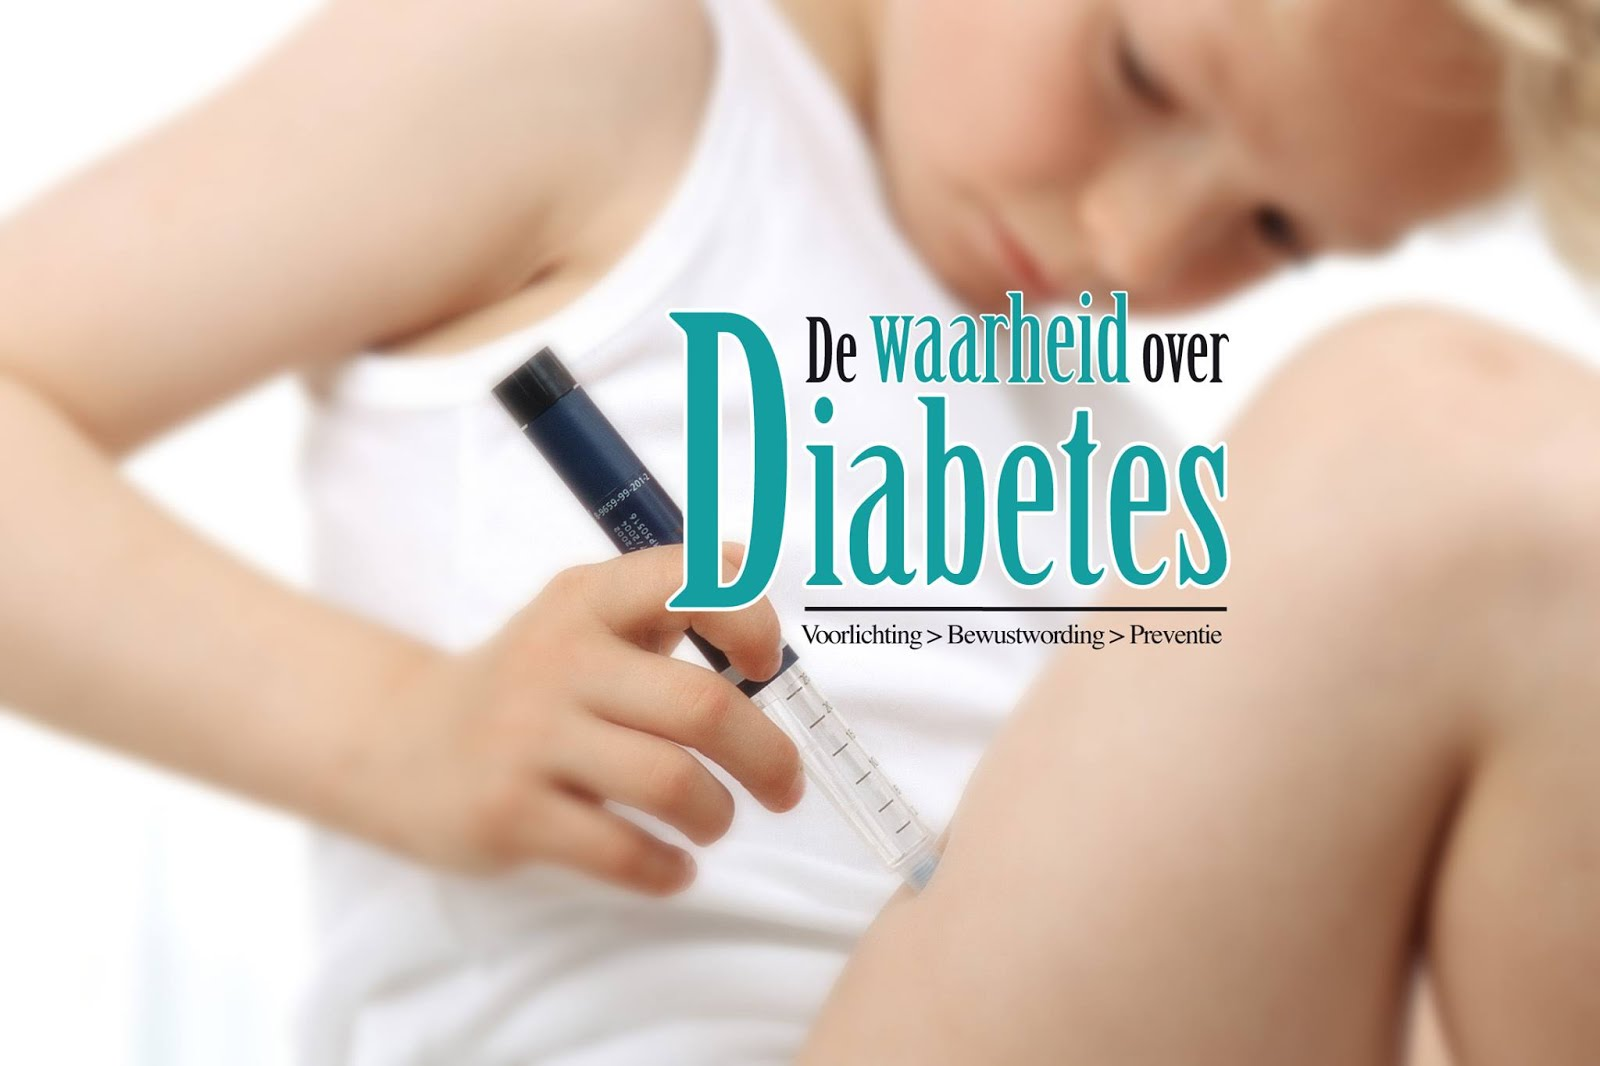 Waarheid over diabetes